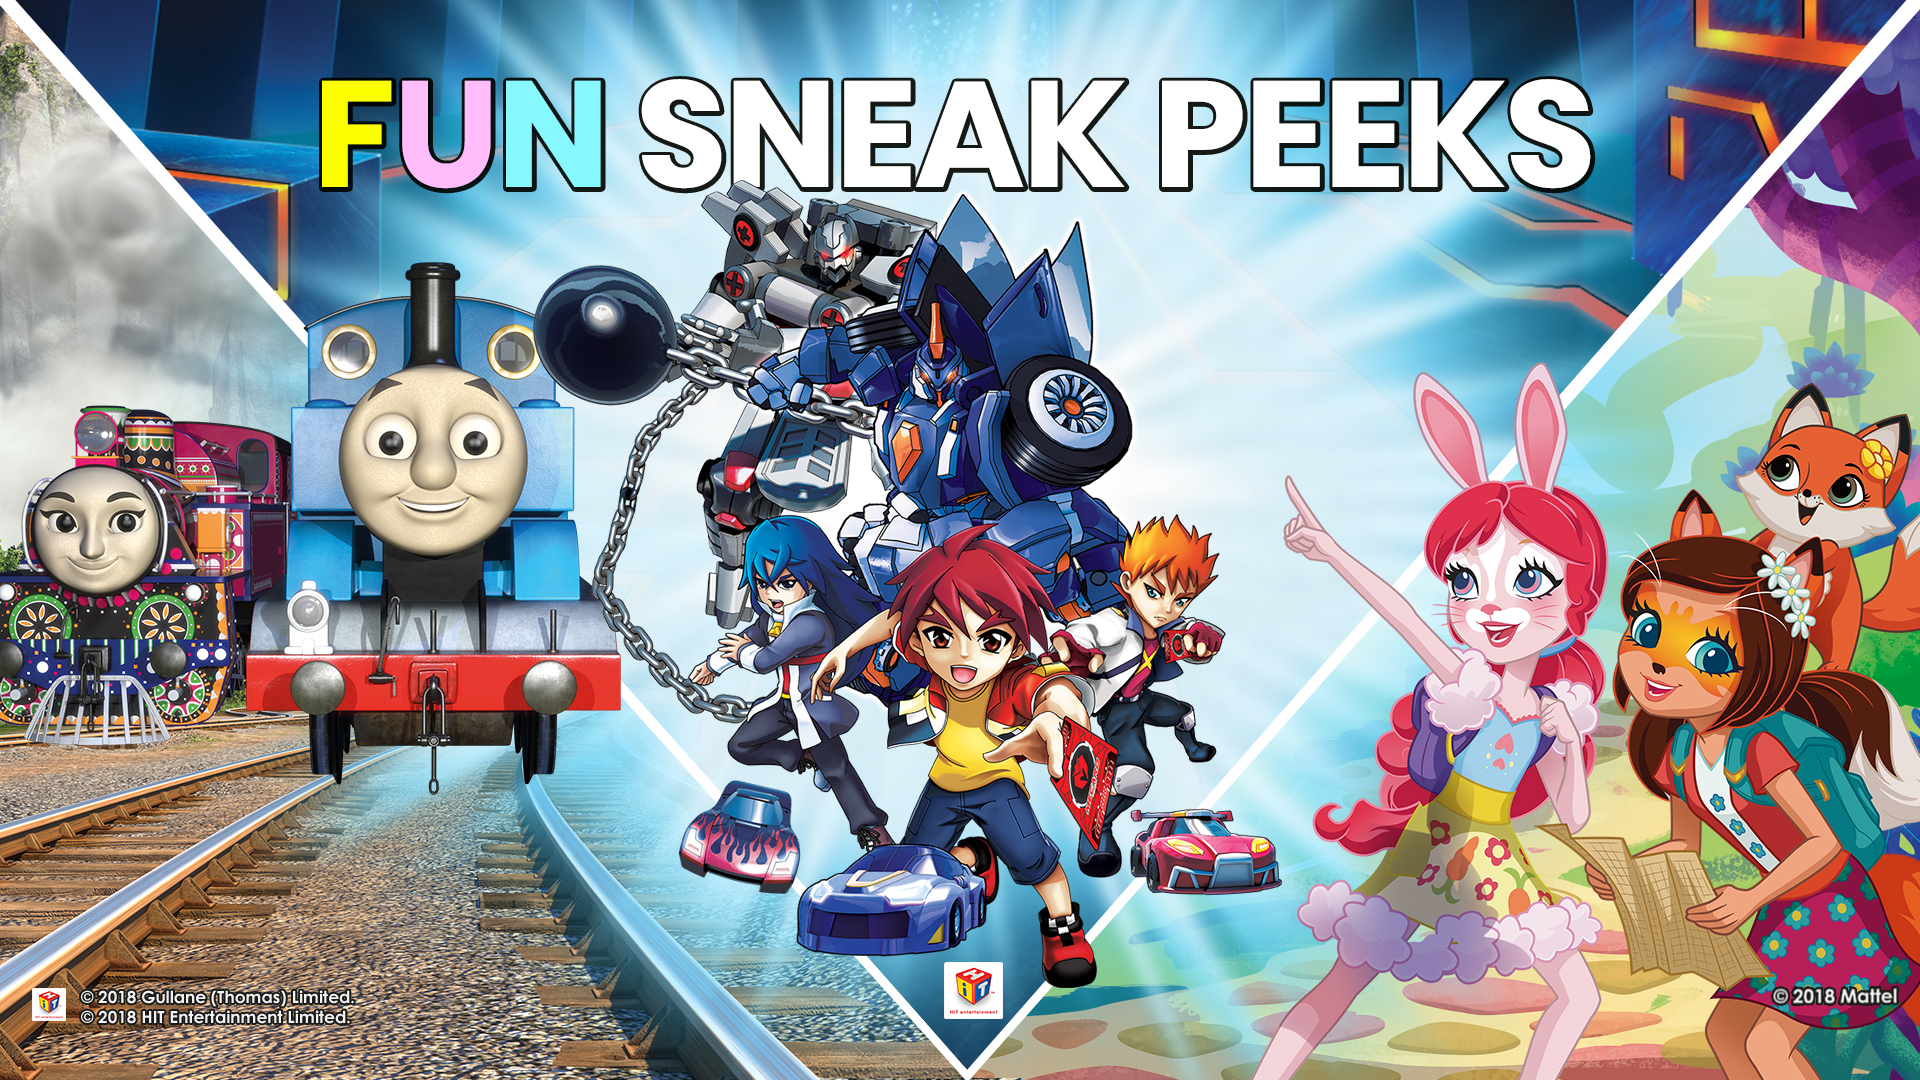 MATTEL FUN SNEAK PEEK